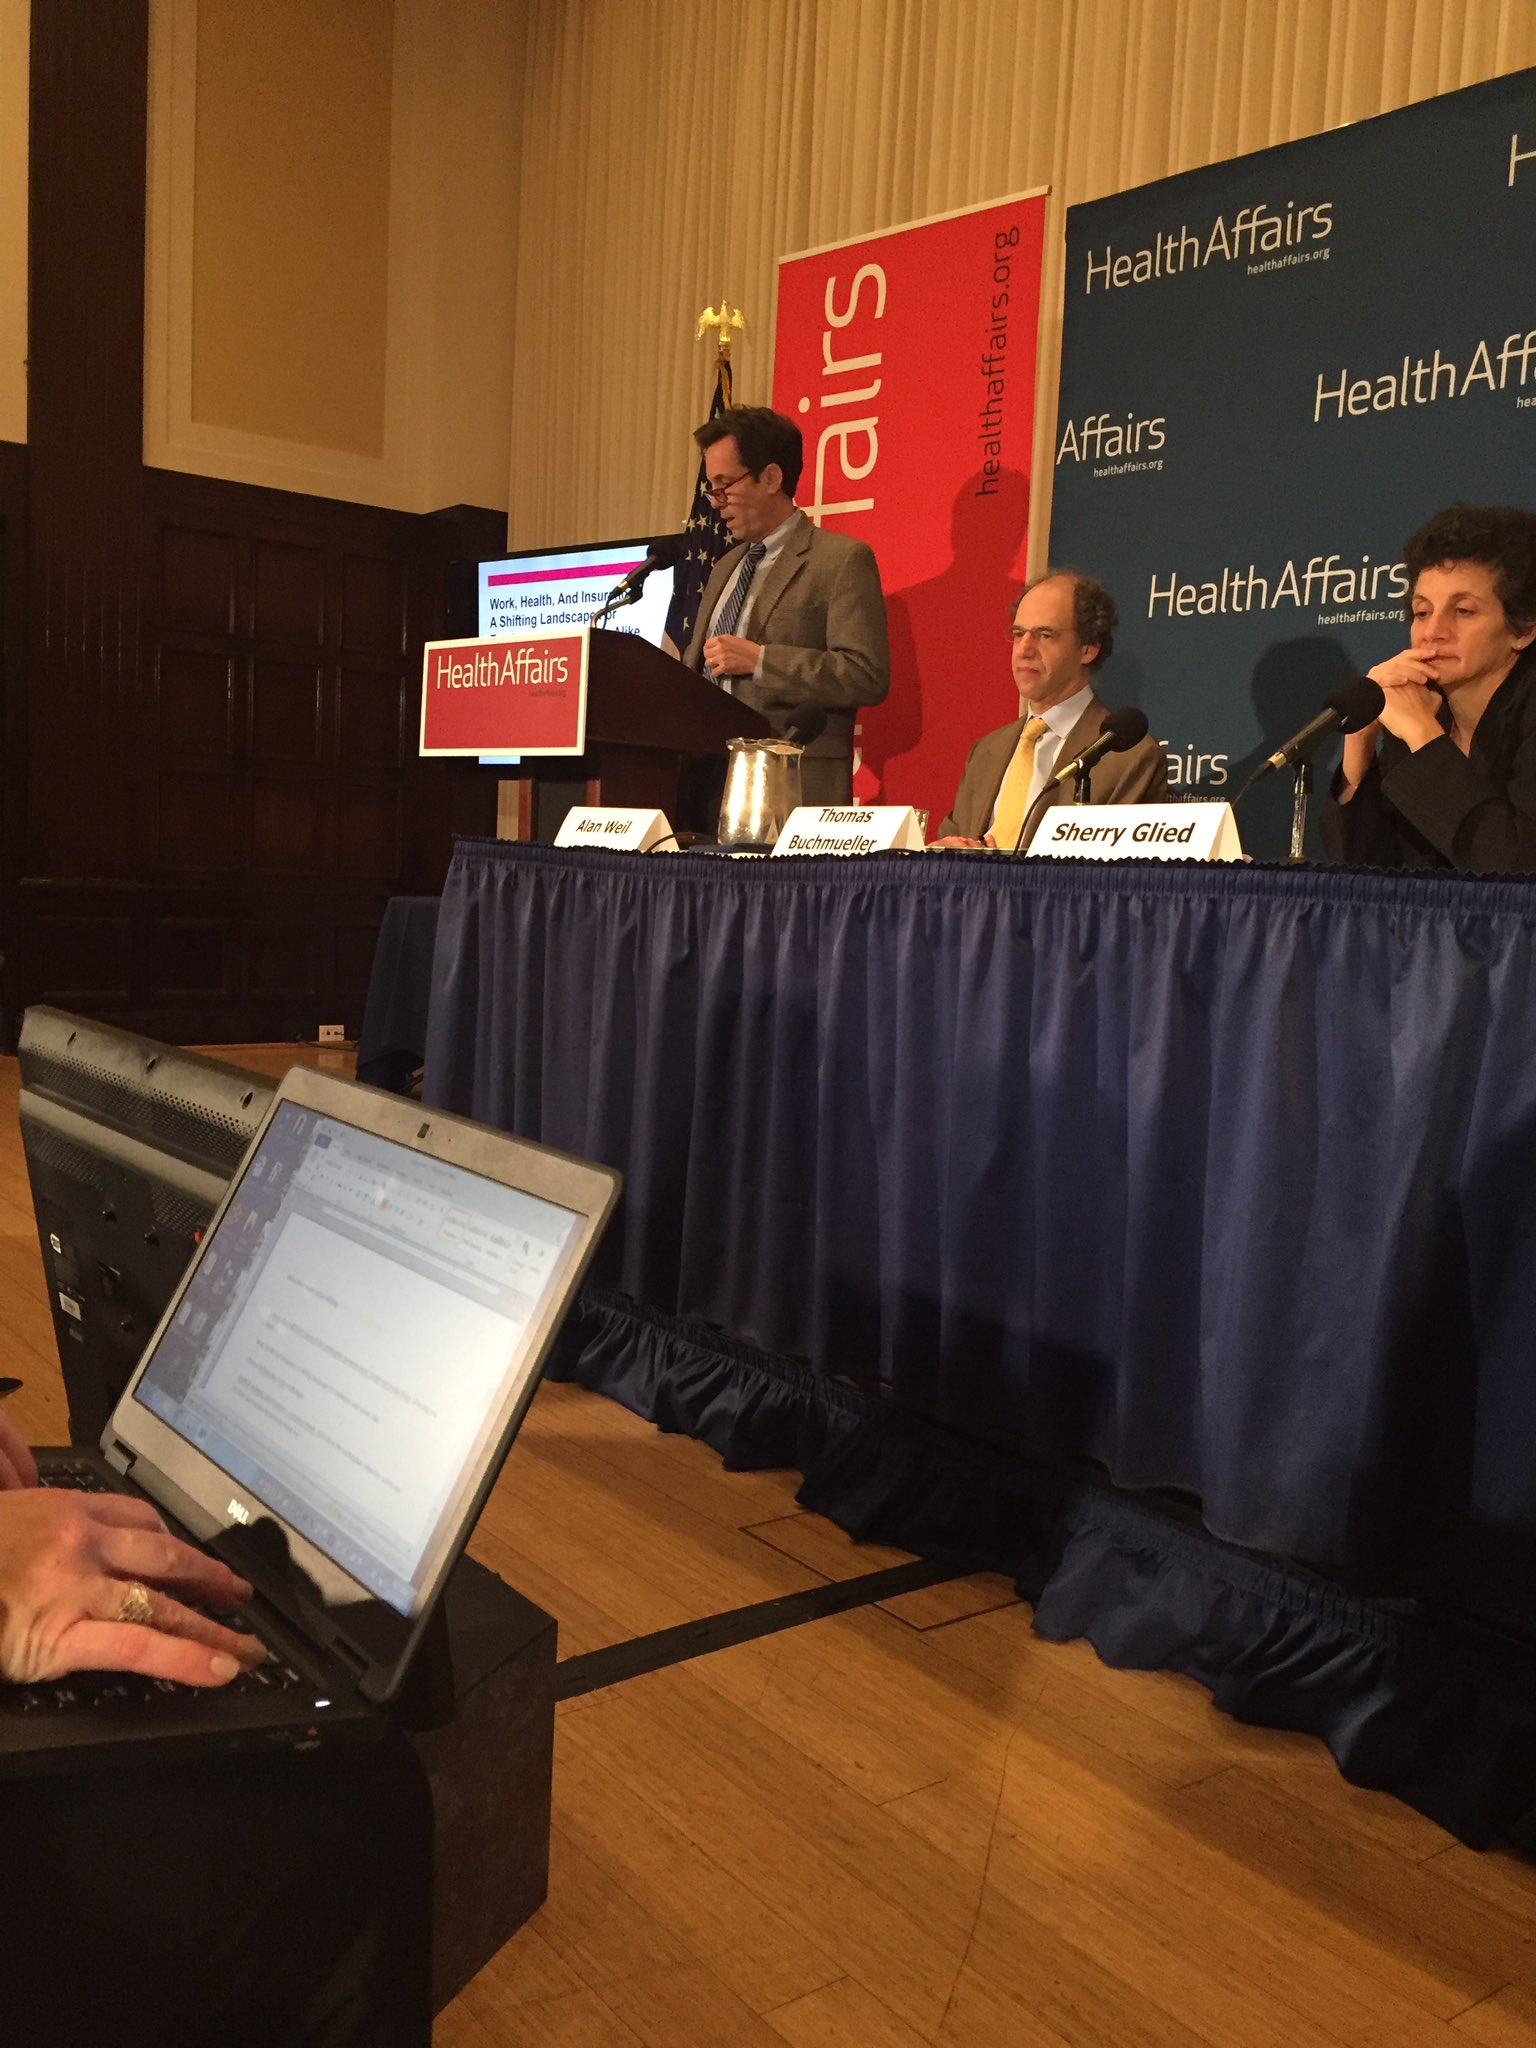 First up, @Health_Affairs briefing: Thomas Buchmueller @MichiganRoss sharing results of demographic changes in workforce. #WorkandHealth https://t.co/bbktizcHdL